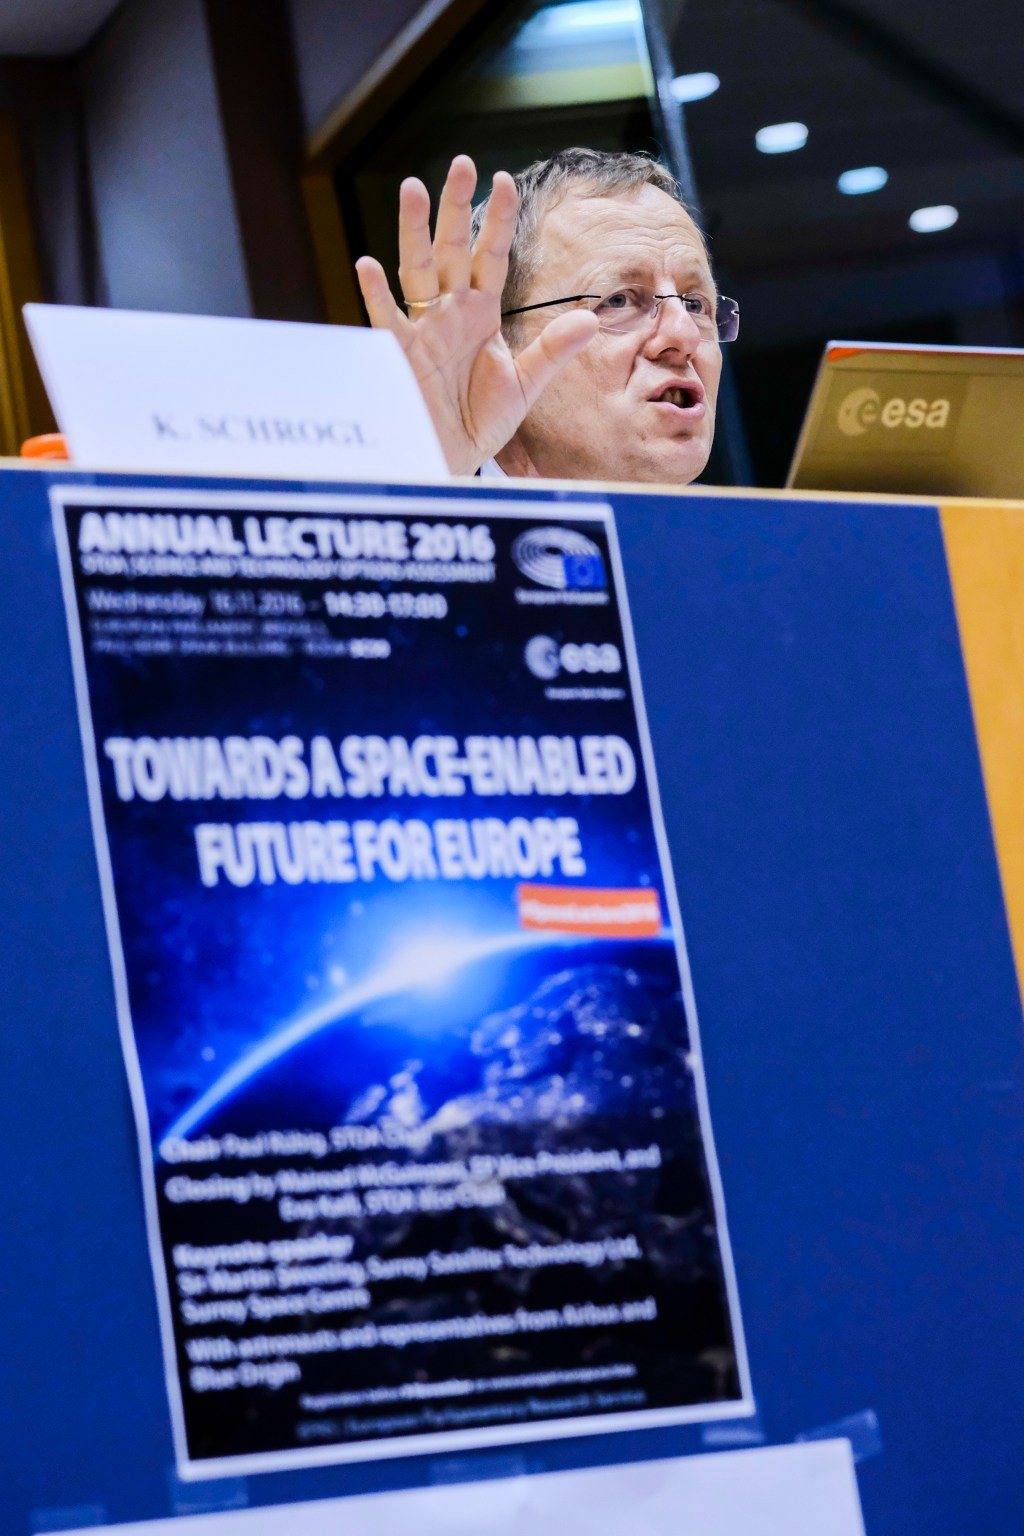 Towards a space-enabled future for Europe